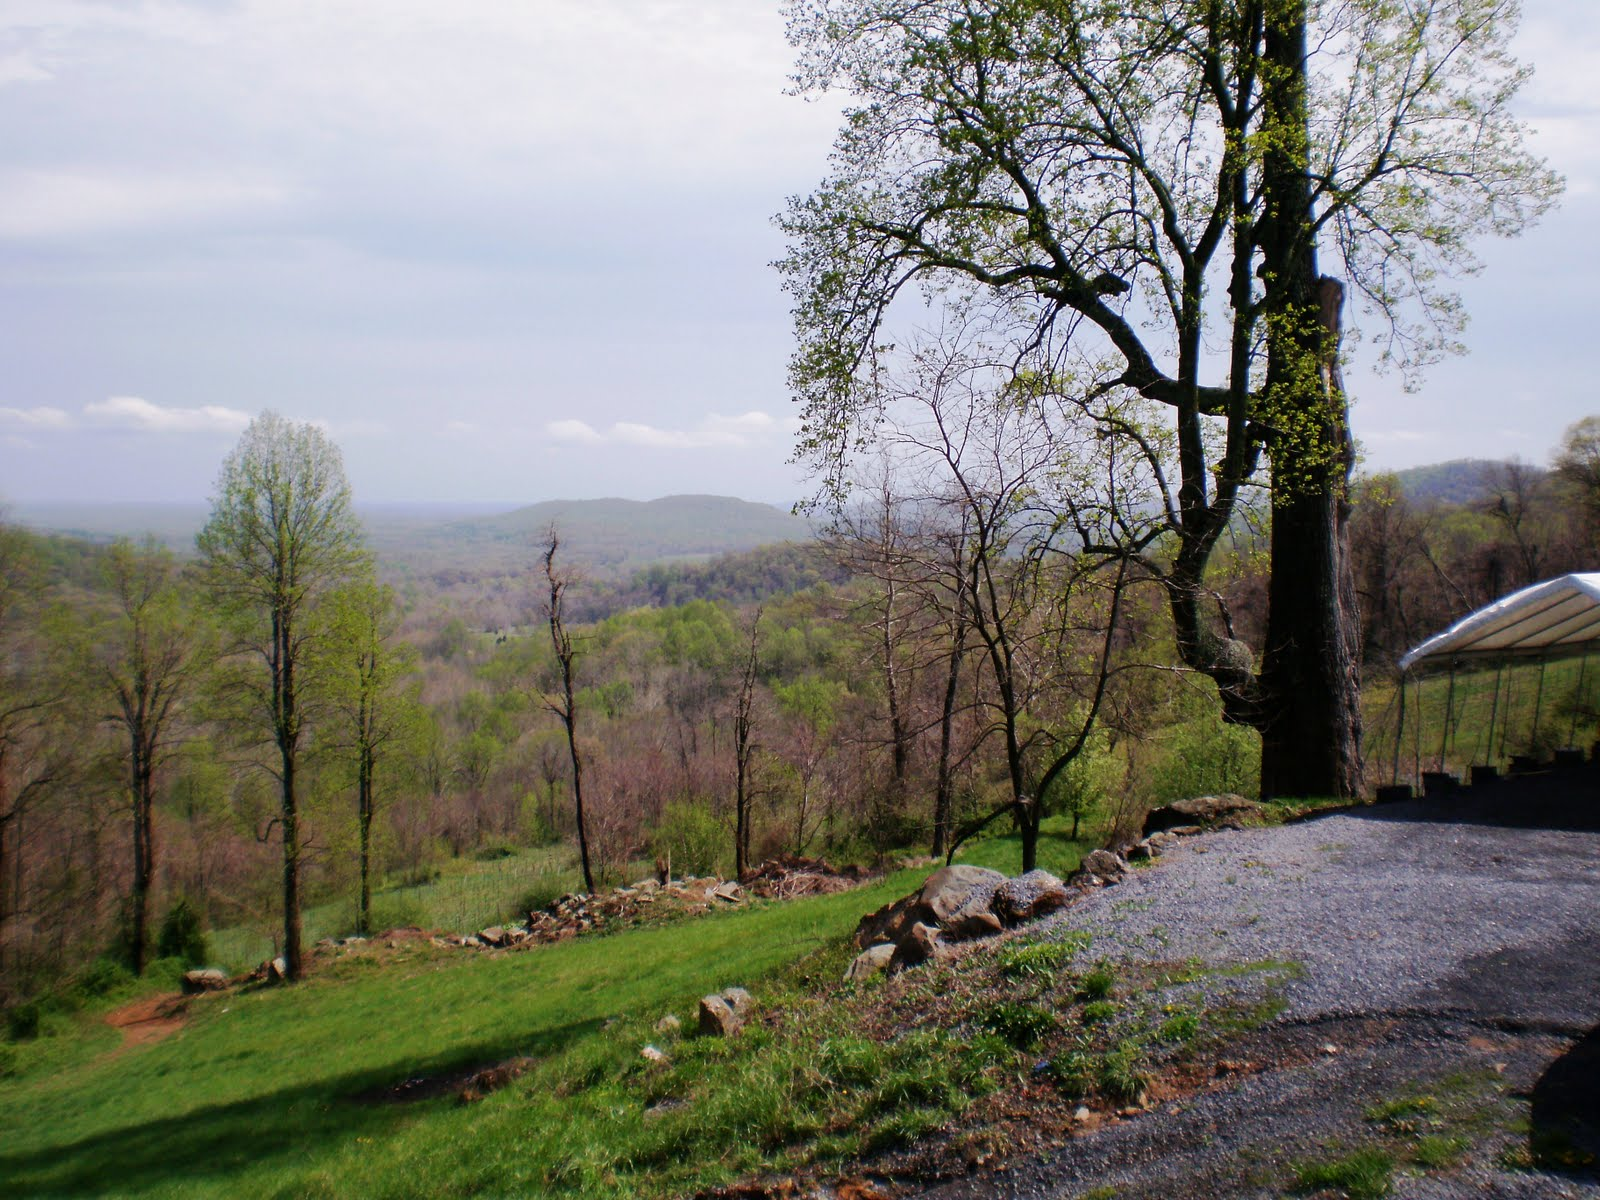 Chester Gap only had four wines available for tasting that day. Tastings are still $7 though which puzzled us a bit. But they do waive one tasting fee for ... & Chester Gap Cellars | Wine About Virginia